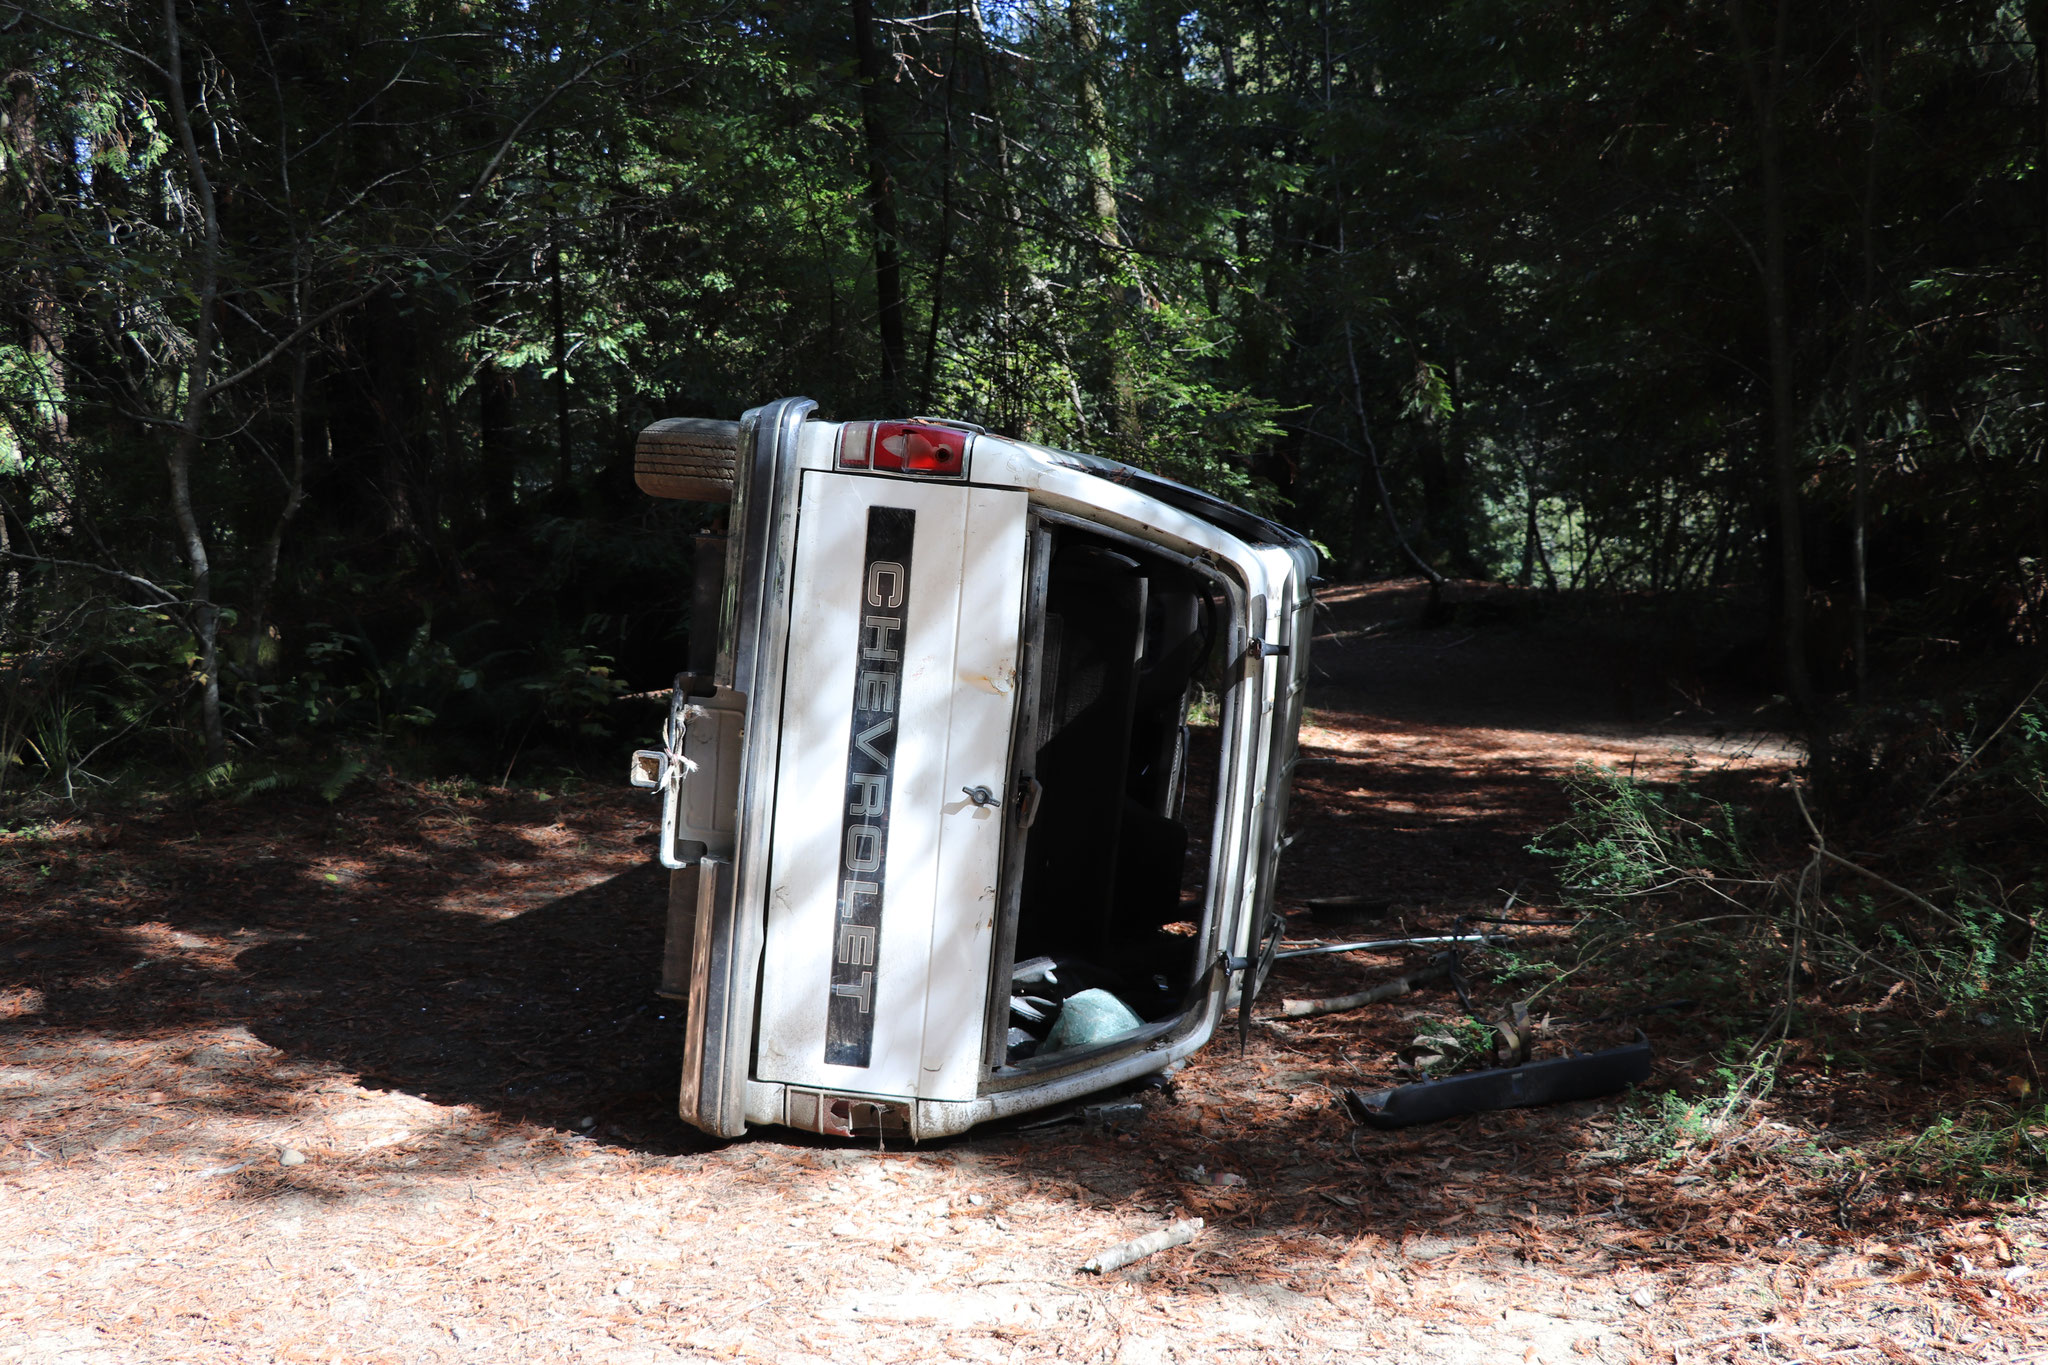 Some guy capsized his truck in the forest and just left it their